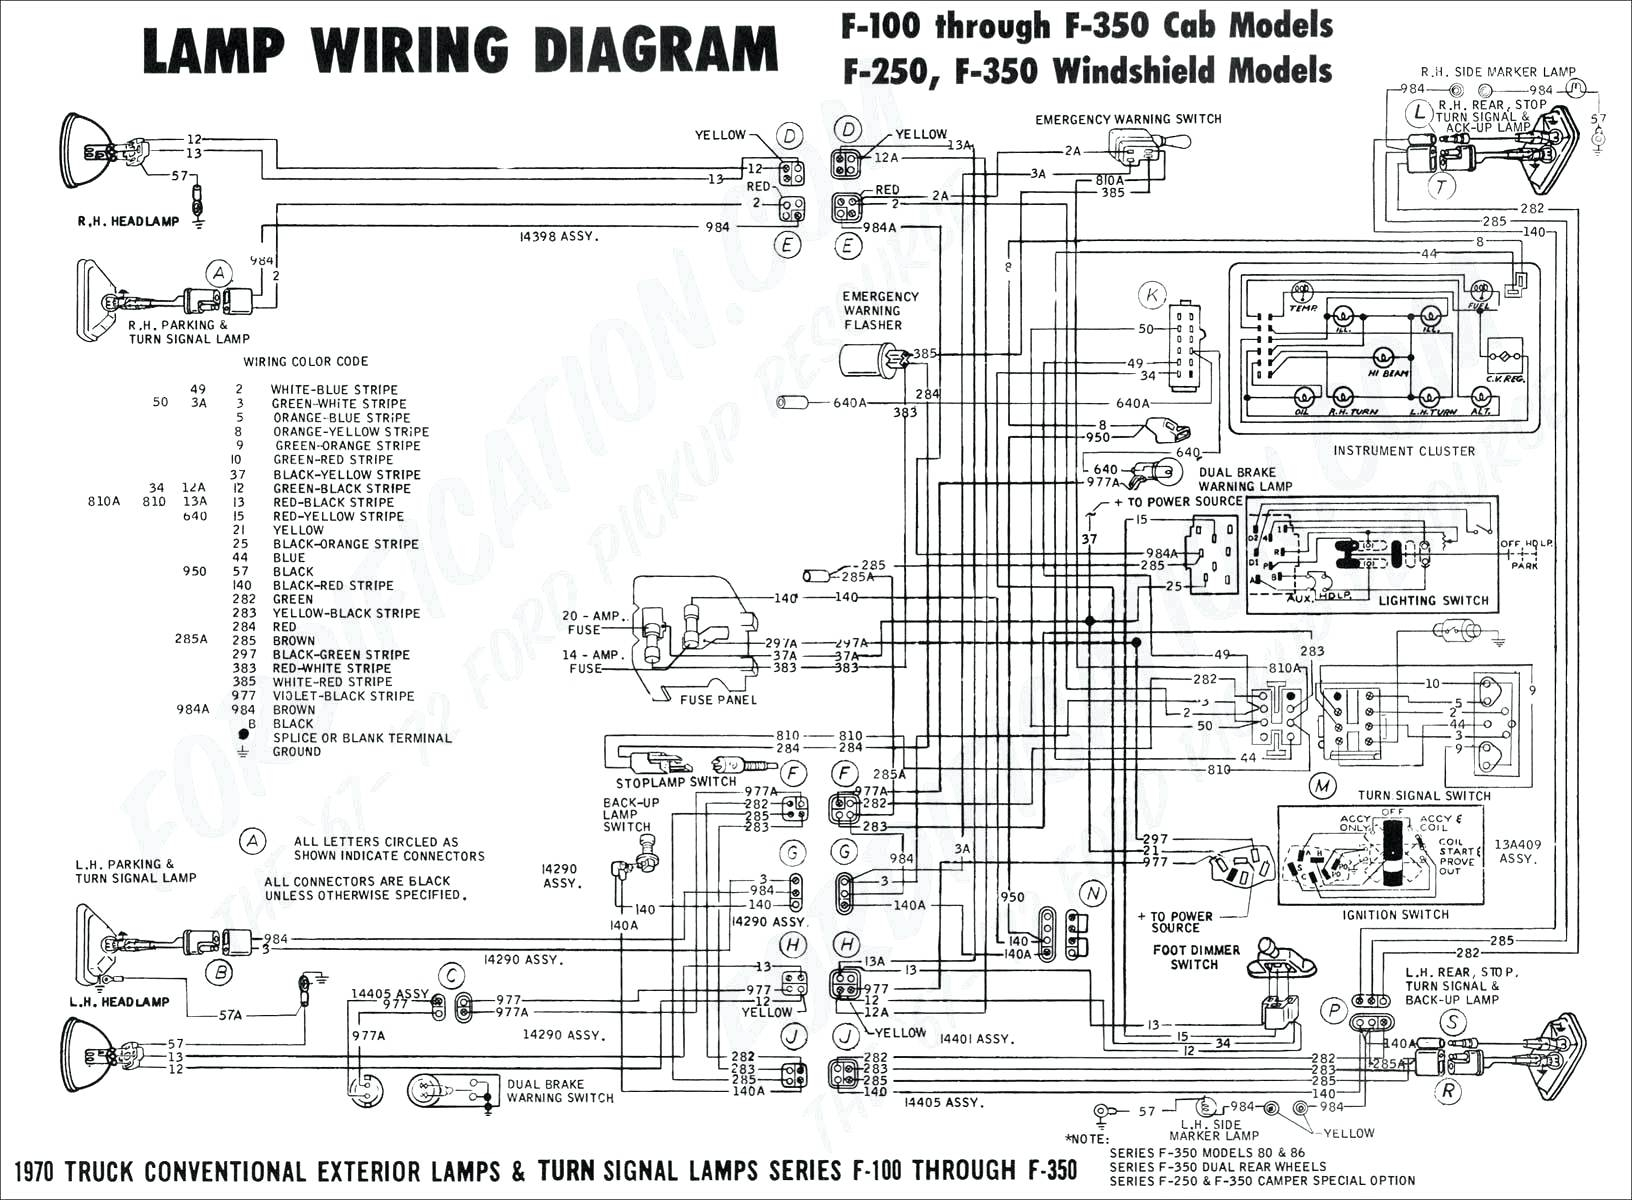 Fiat 850 Spider Wiring Diagram Full Hd Version Wiring Diagram Lowe Diagram Emballages Sous Vide Fr